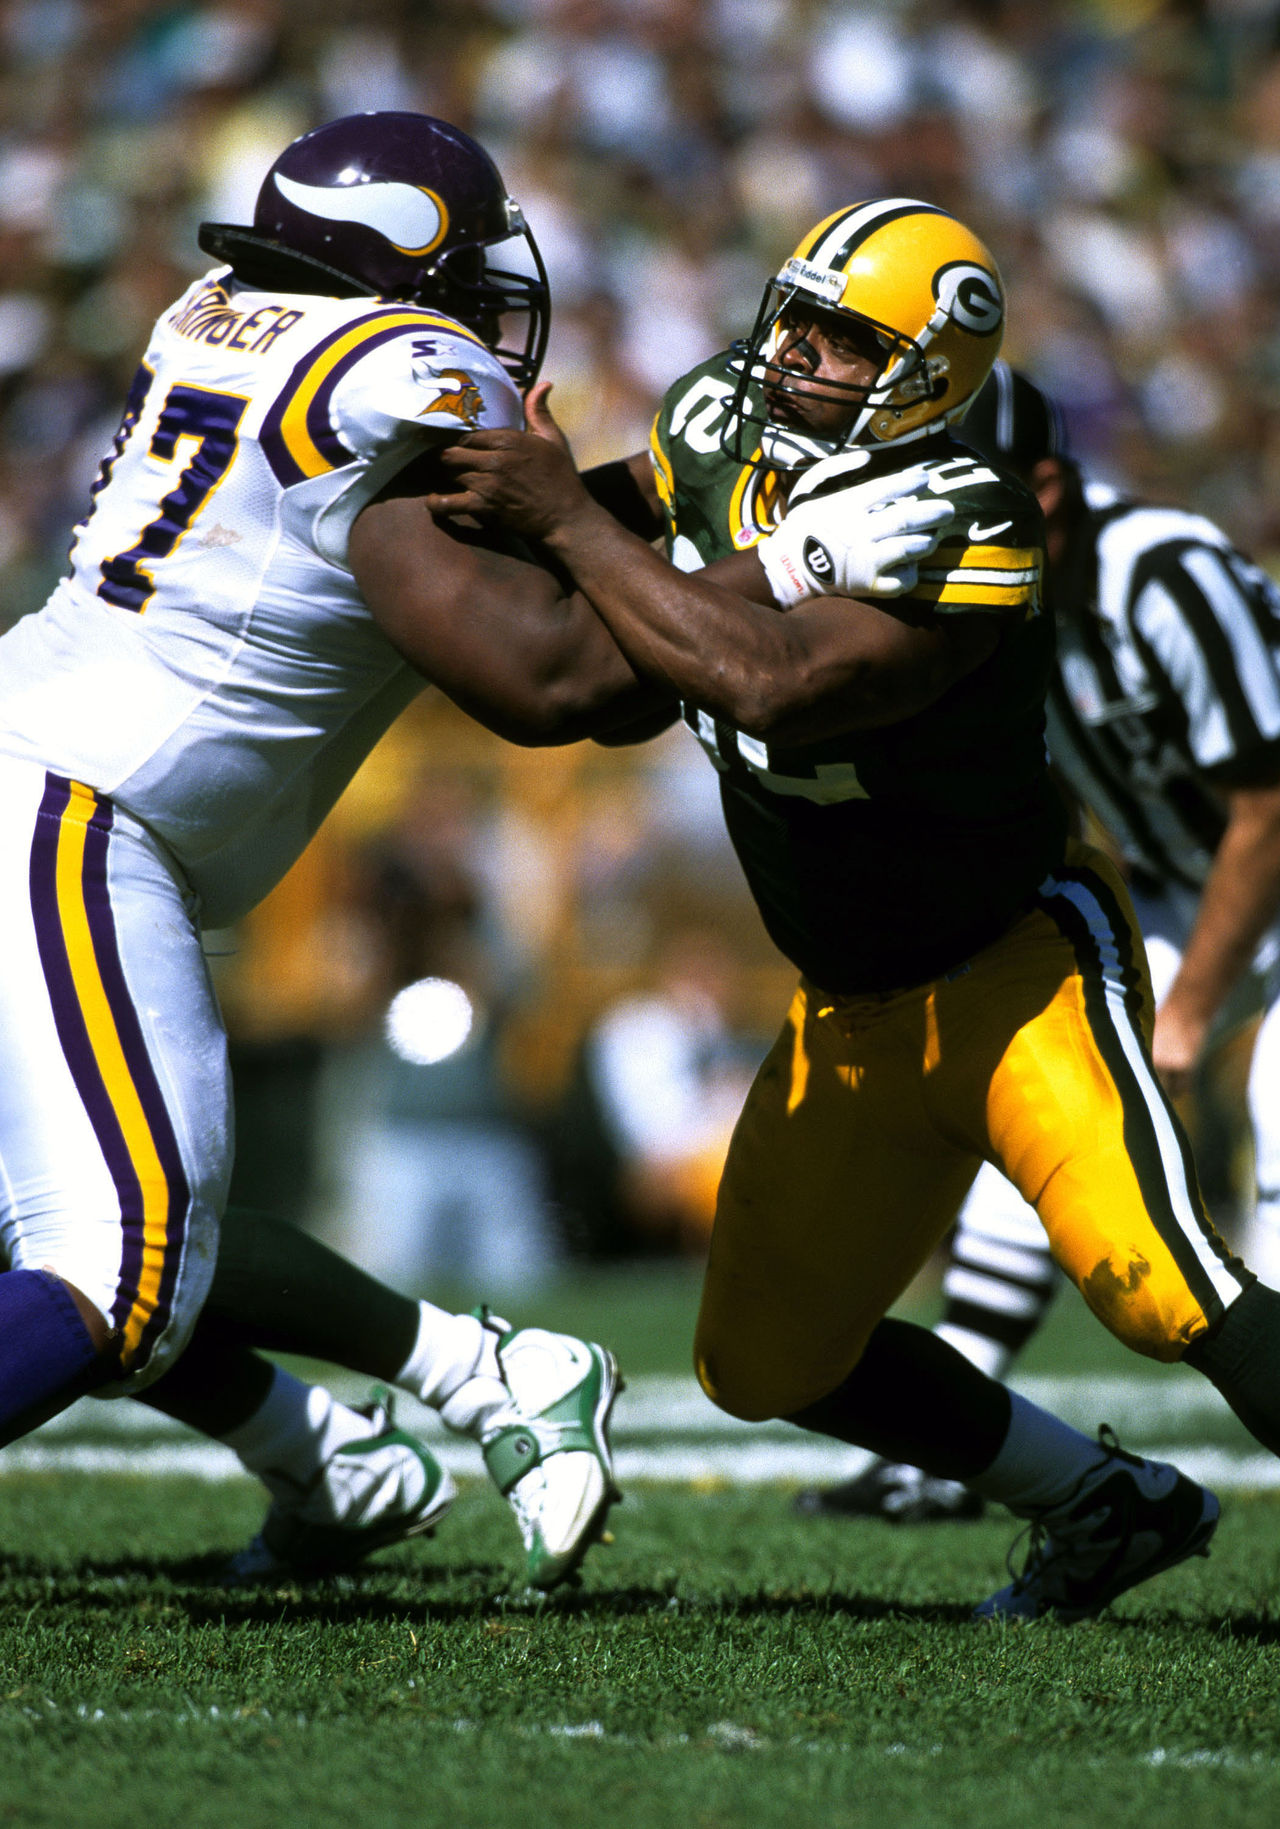 reggie white term paper Below is an essay on reggie white from anti essays, your source for research papers, essays, and term paper examples reggie white he is arguable the best defensive lineman who ever played the game of football.